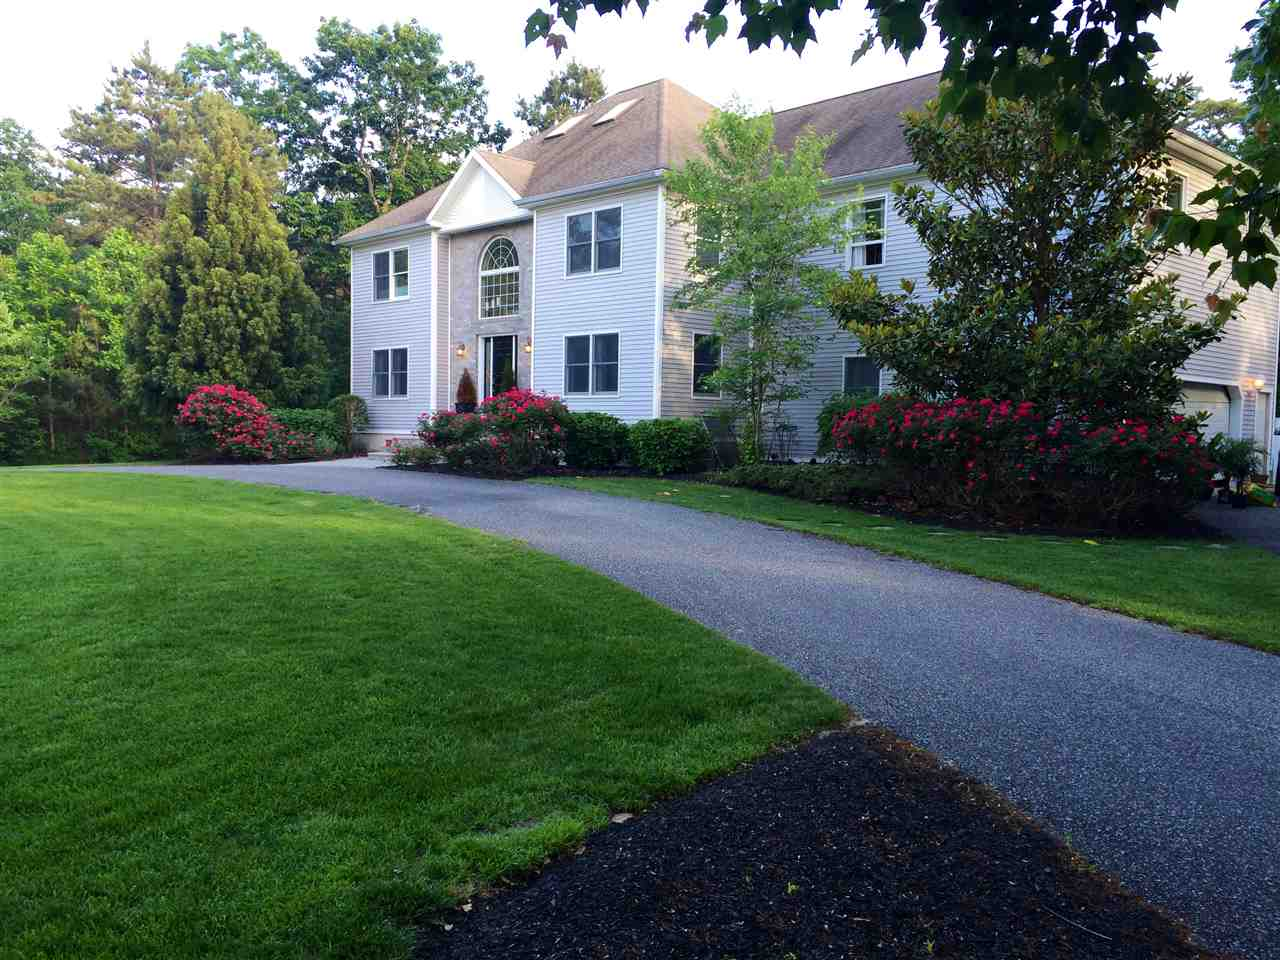 38 W Woodland Ave  - Cape May Court House